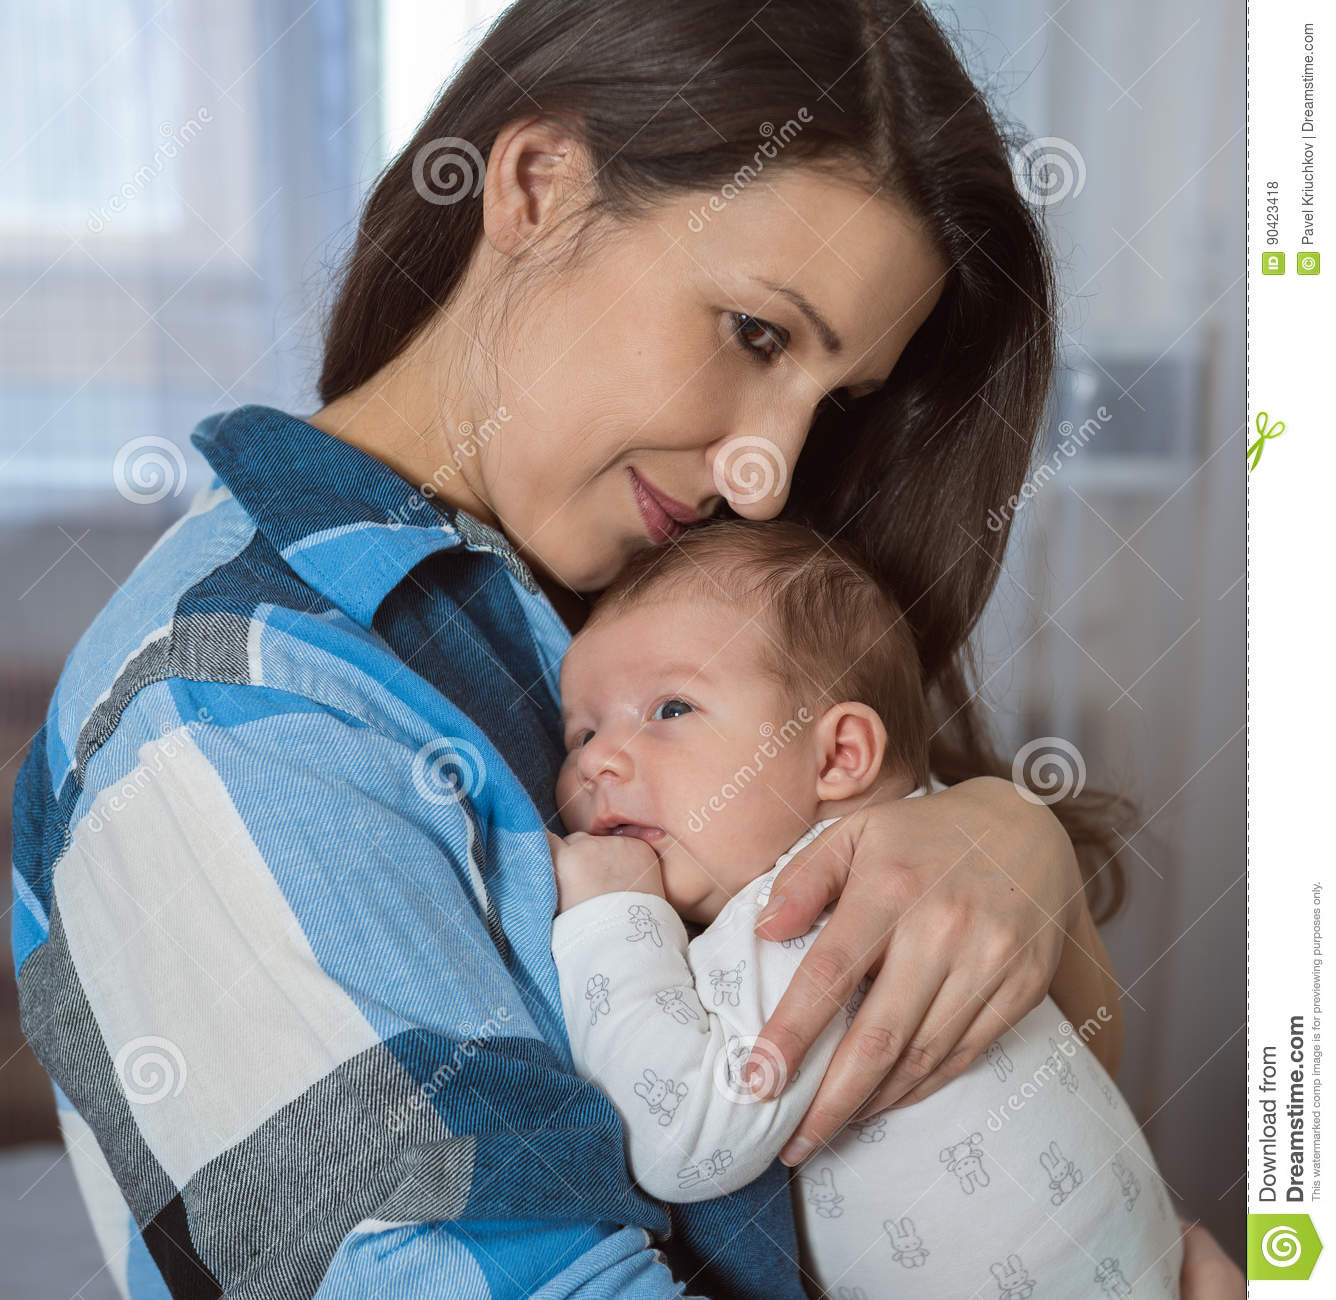 Portrait of a happy family. A woman with a newborn baby